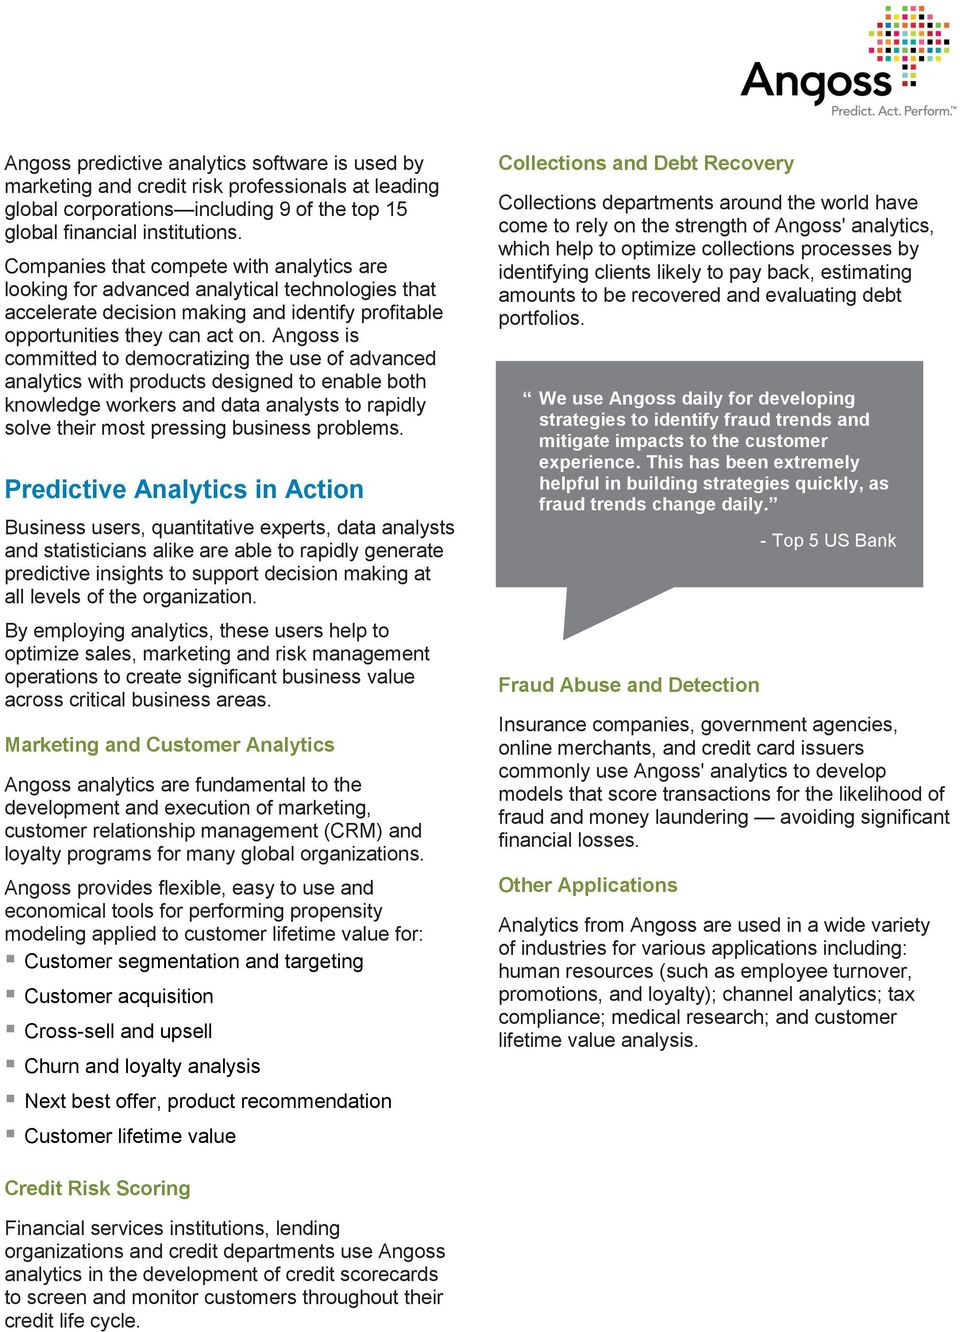 Angoss is committed to democratizing the use of advanced analytics with products designed to enable both knowledge workers and data analysts to rapidly solve their most pressing business problems.